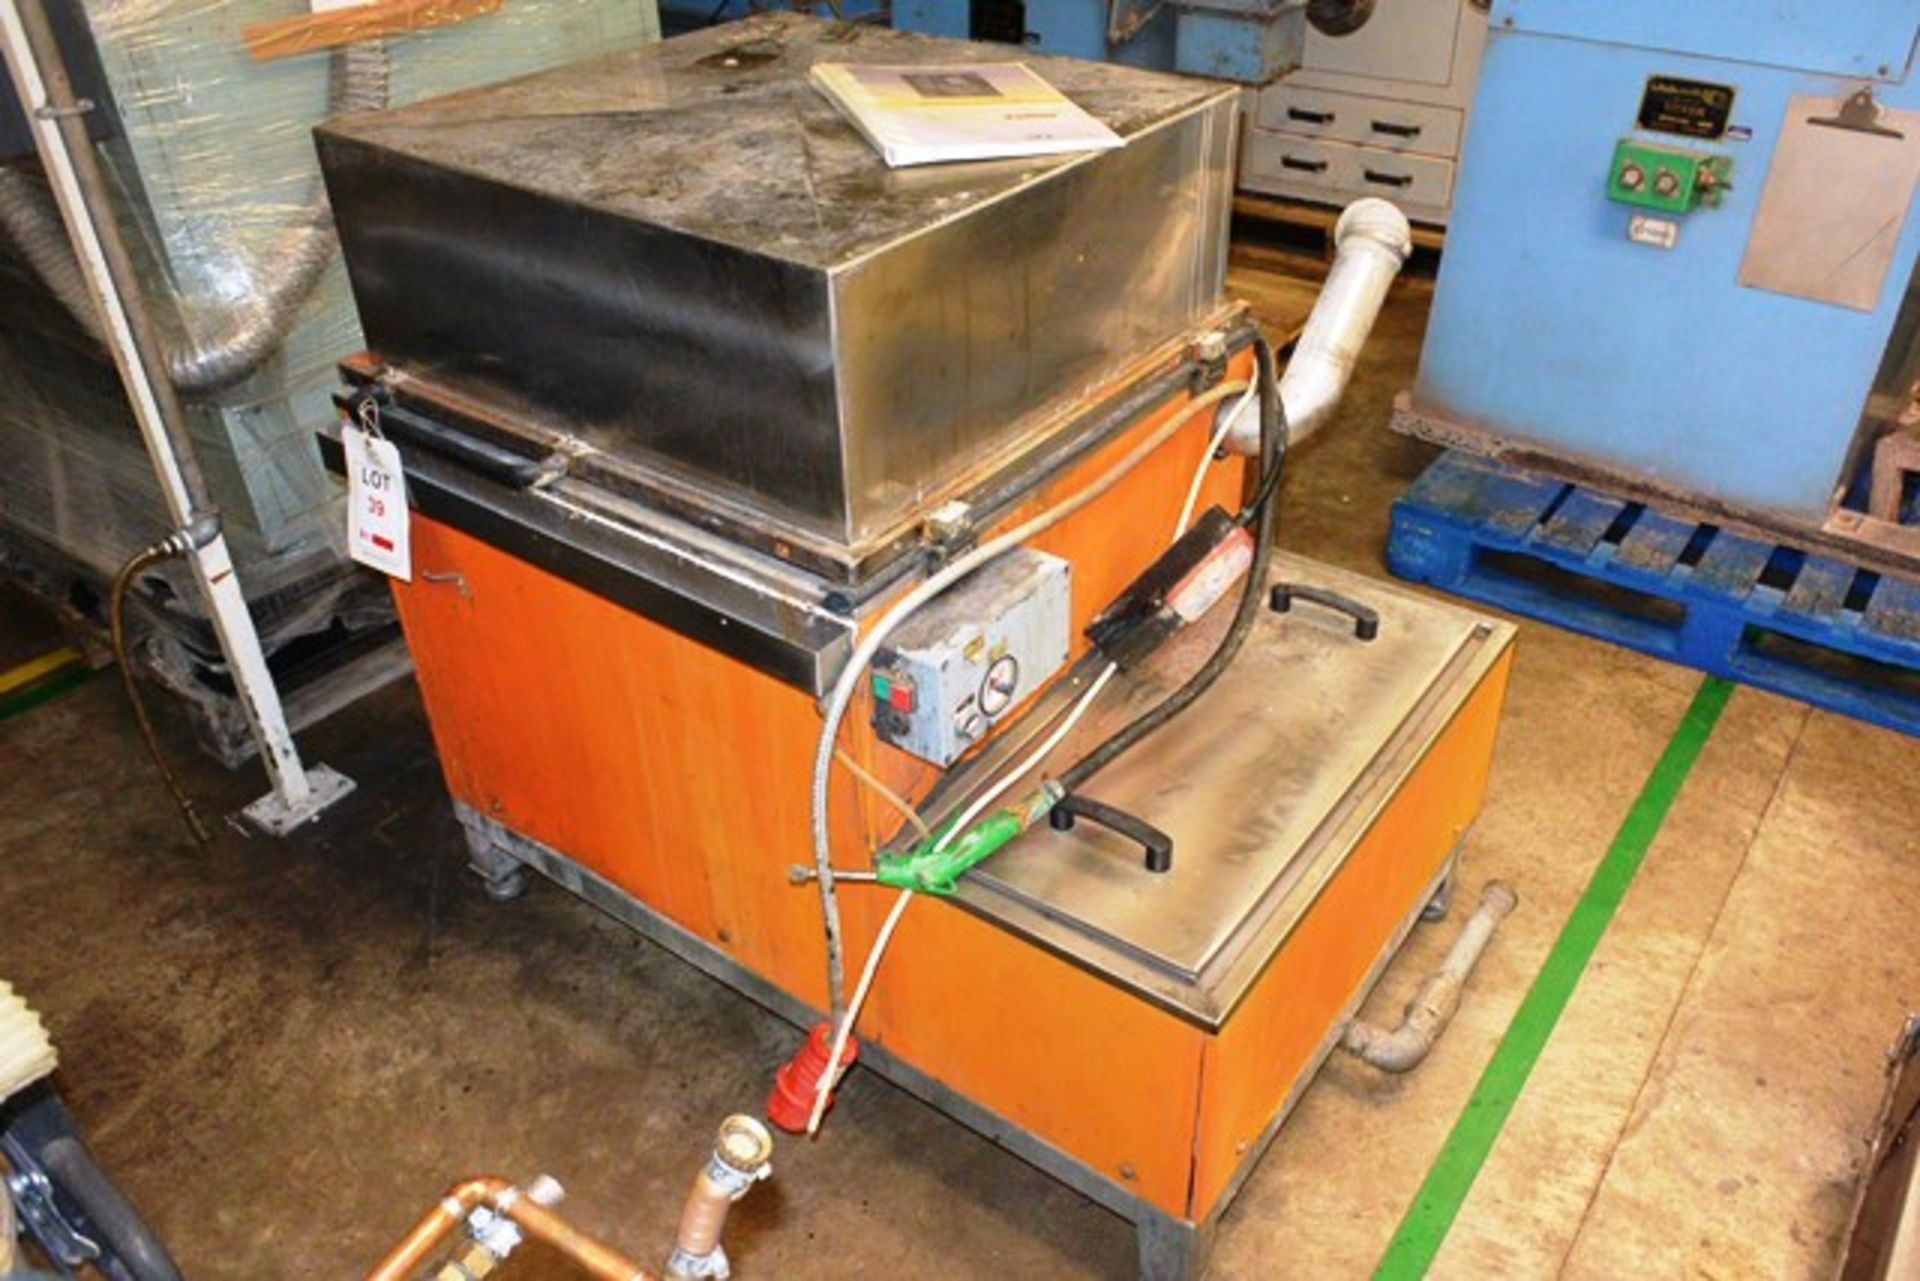 Turbex 800 No. 018545 industrial washer unit, 3 phase (working condition unknown)